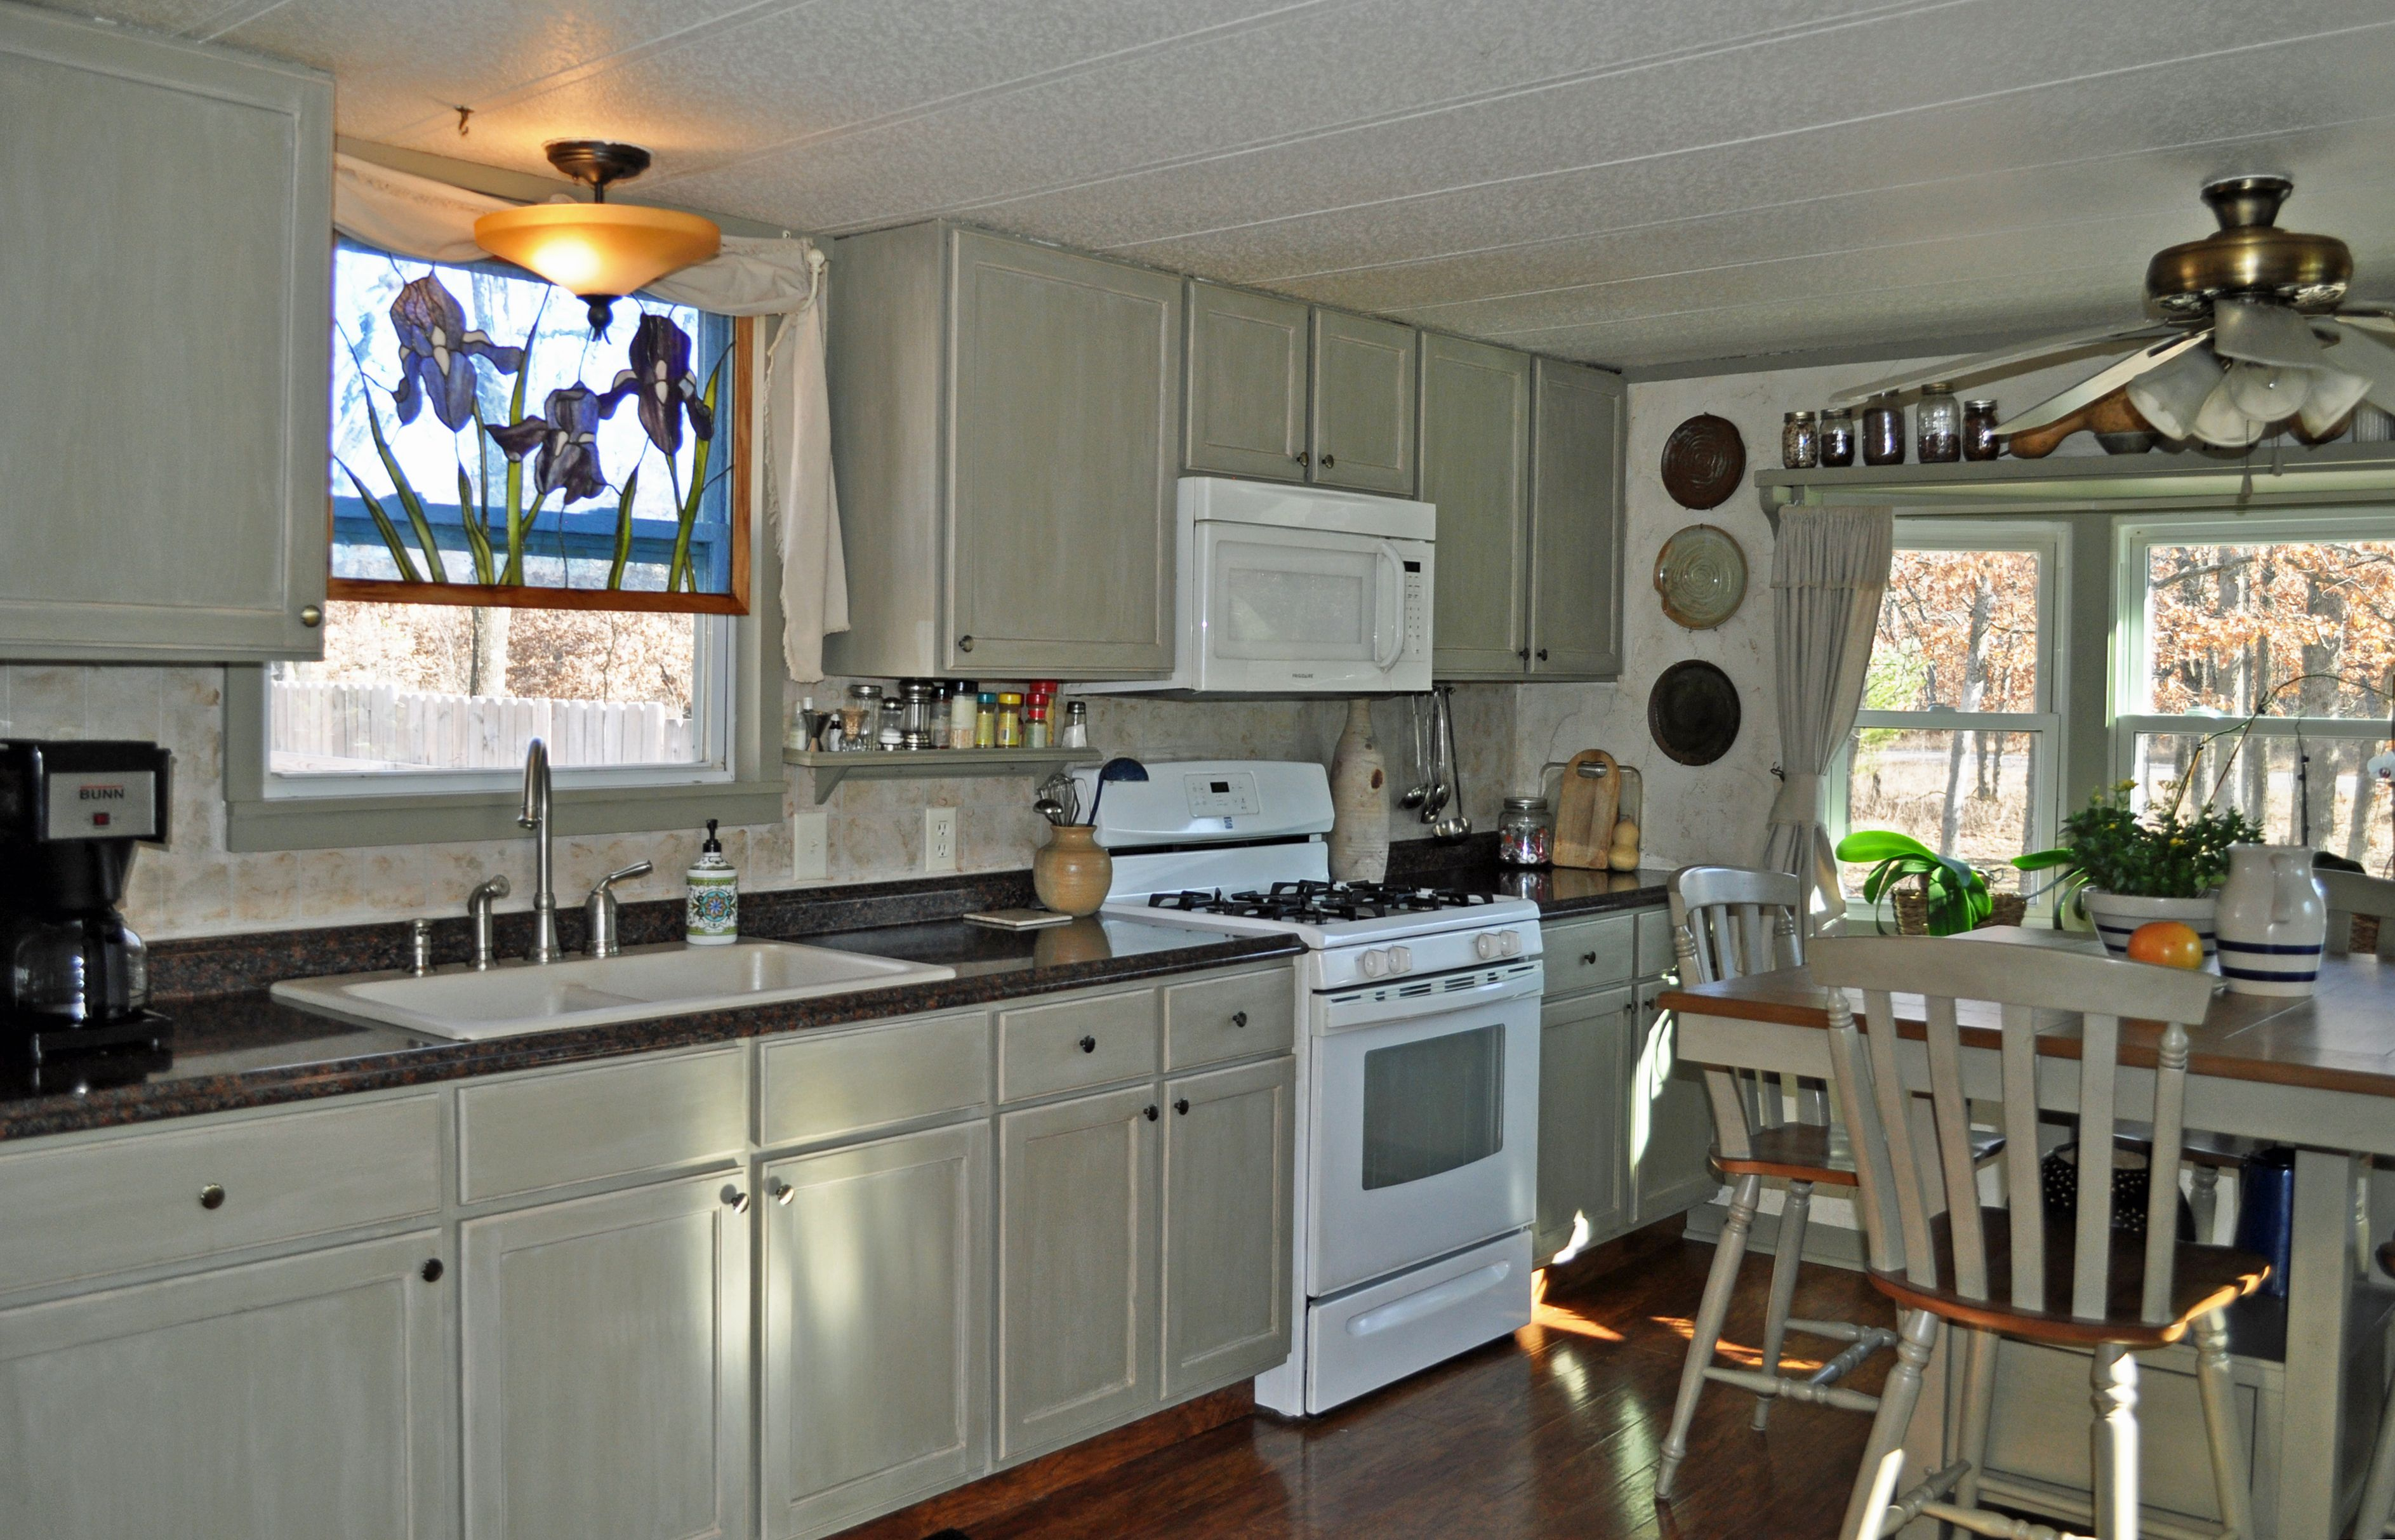 mobile home kitchen sink outdoor kitchens ideas single wide diy 43remodel 43 makeover 43small